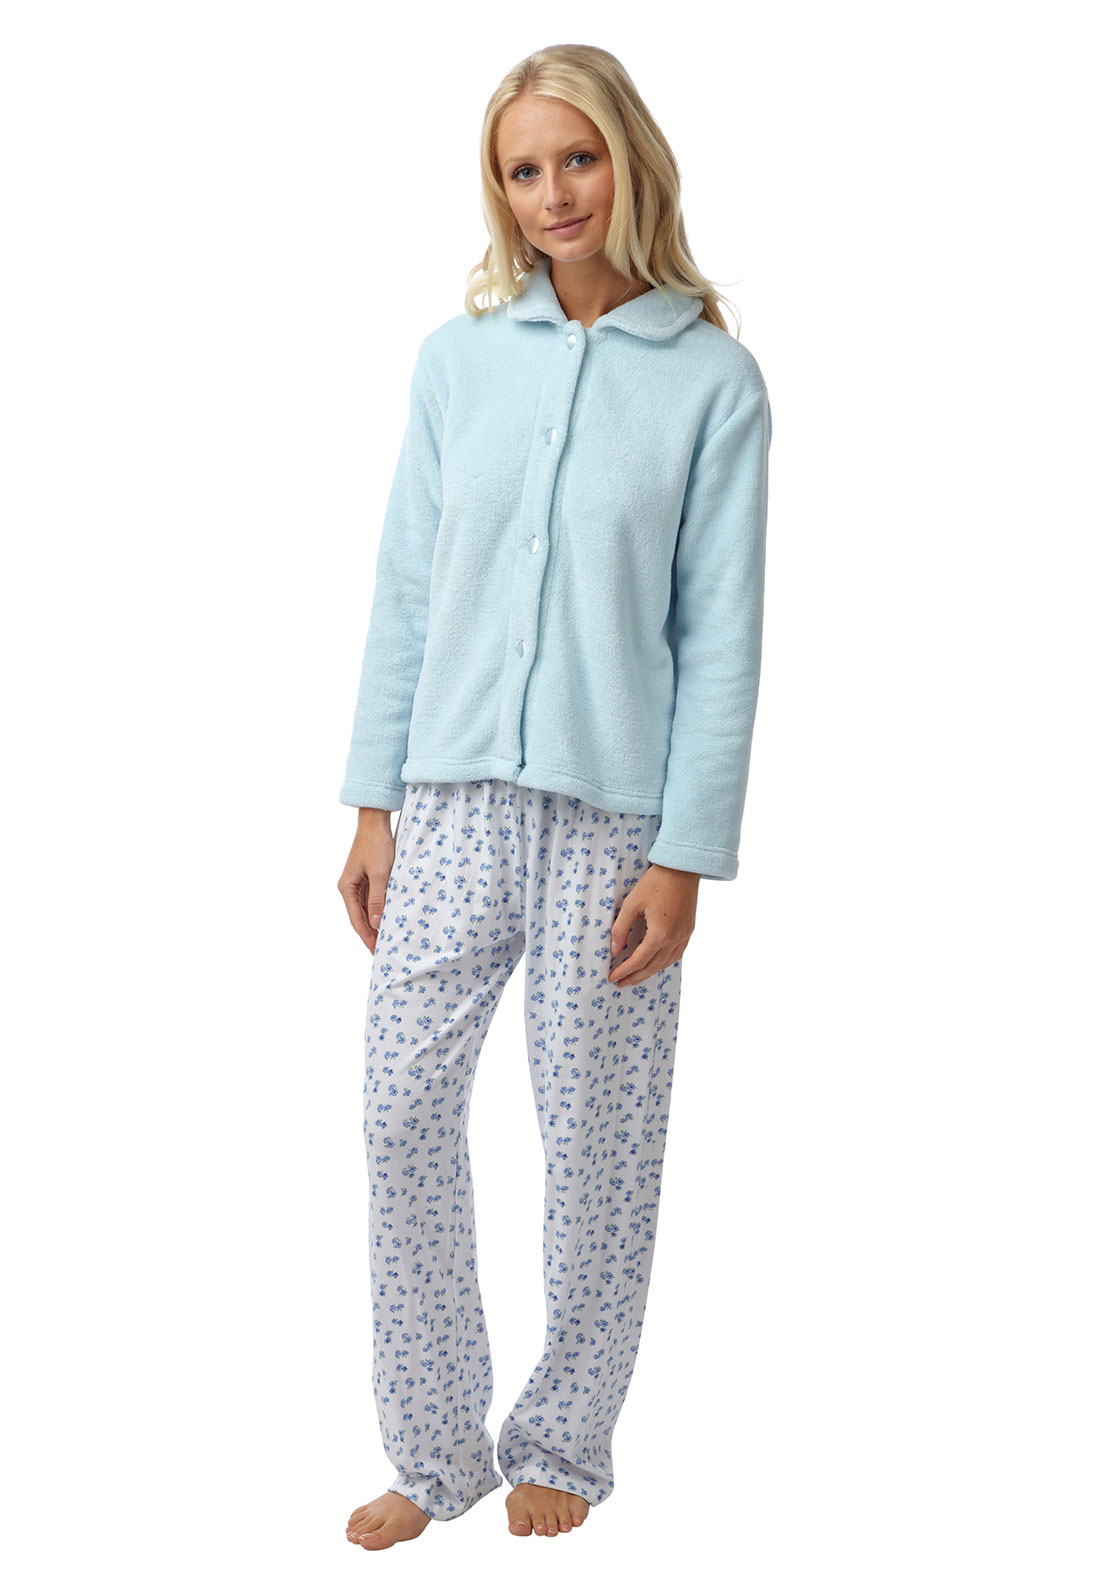 Marlon Terry Fleece Bed Jacket, Pale Blue